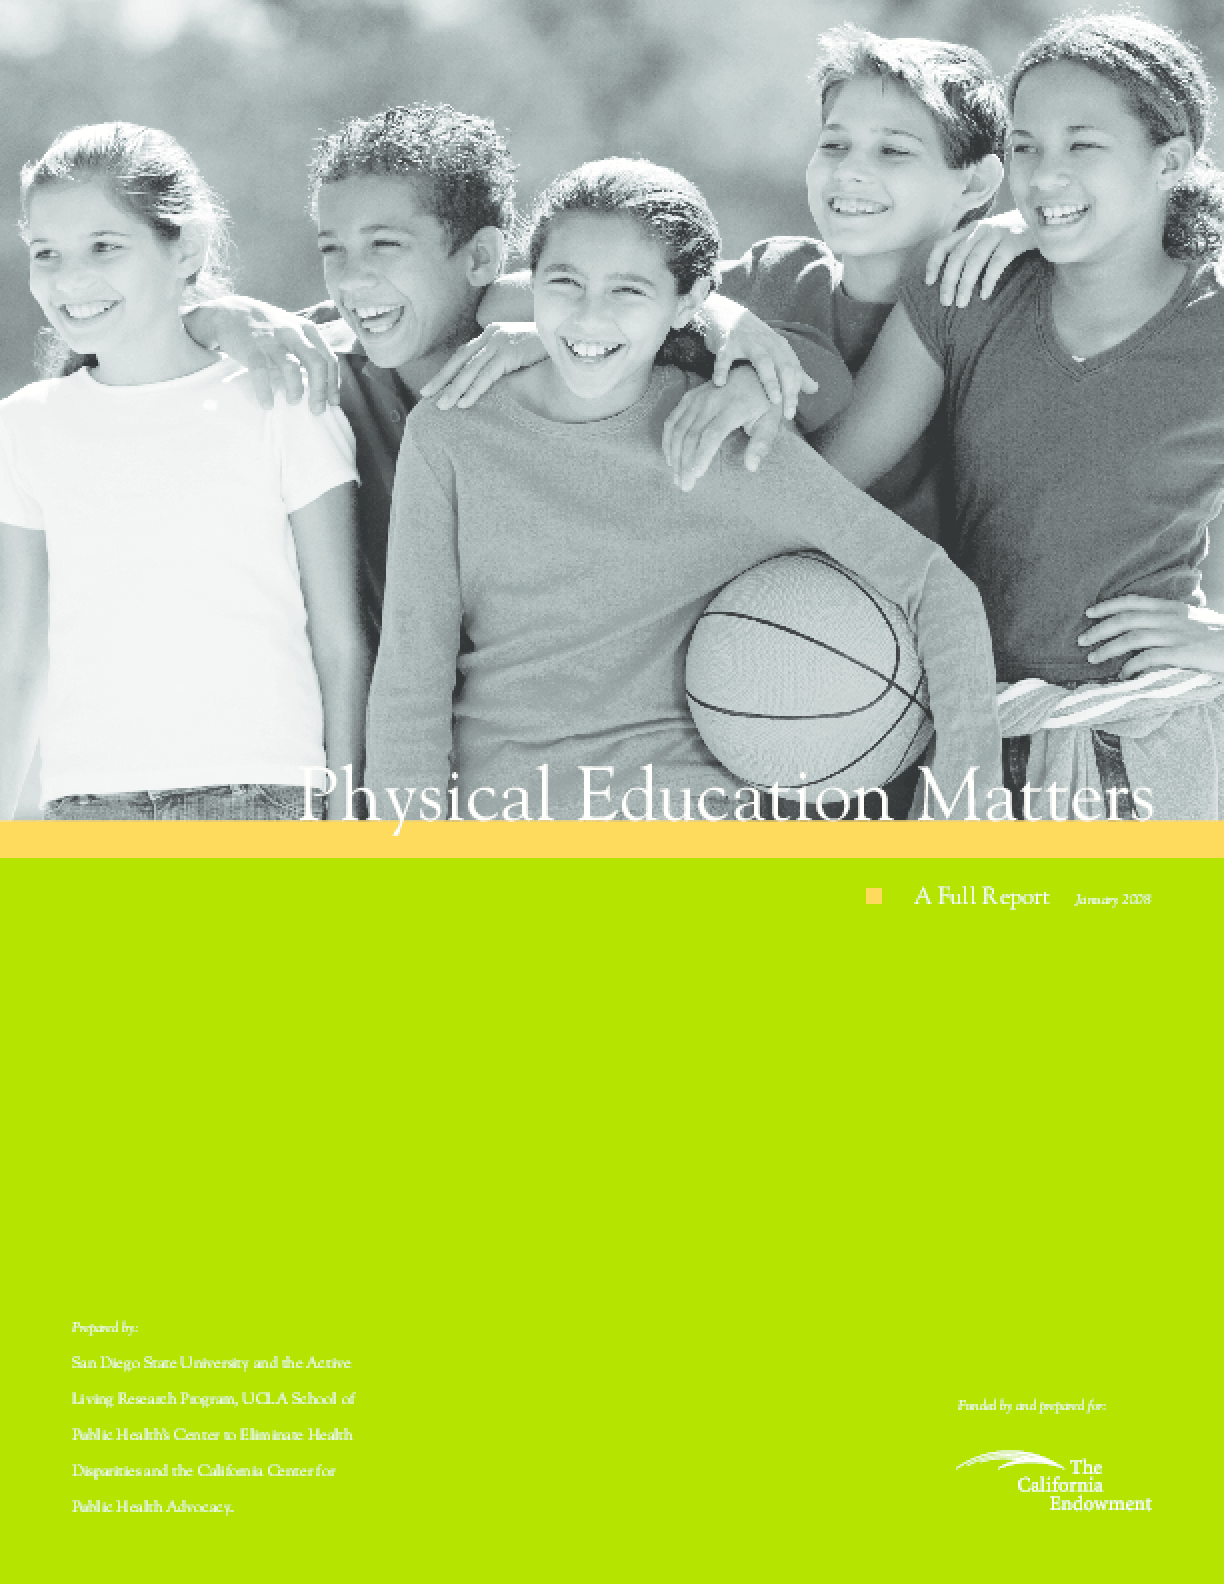 Physical Education Matters: A Full Report